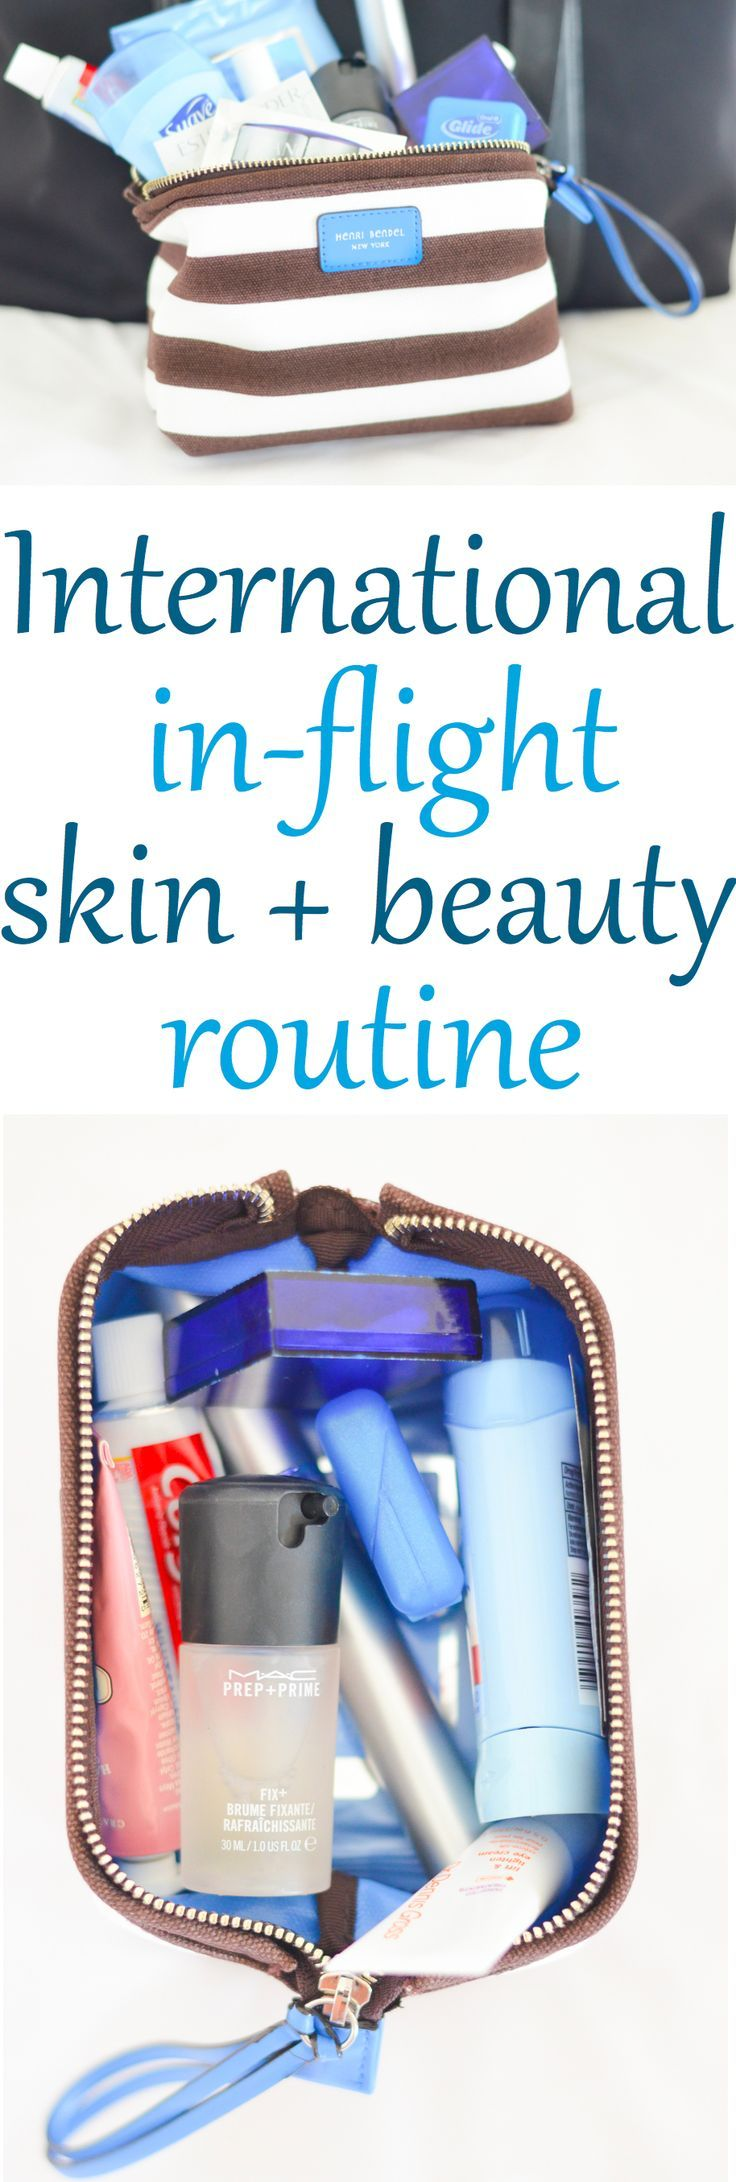 How to keep your skin happy and healthy on those long international flights. A routine for keeping your face clean and moisturized as well as a few tips for not looking so tired and worn out. In-flight skin care + beauty tips.